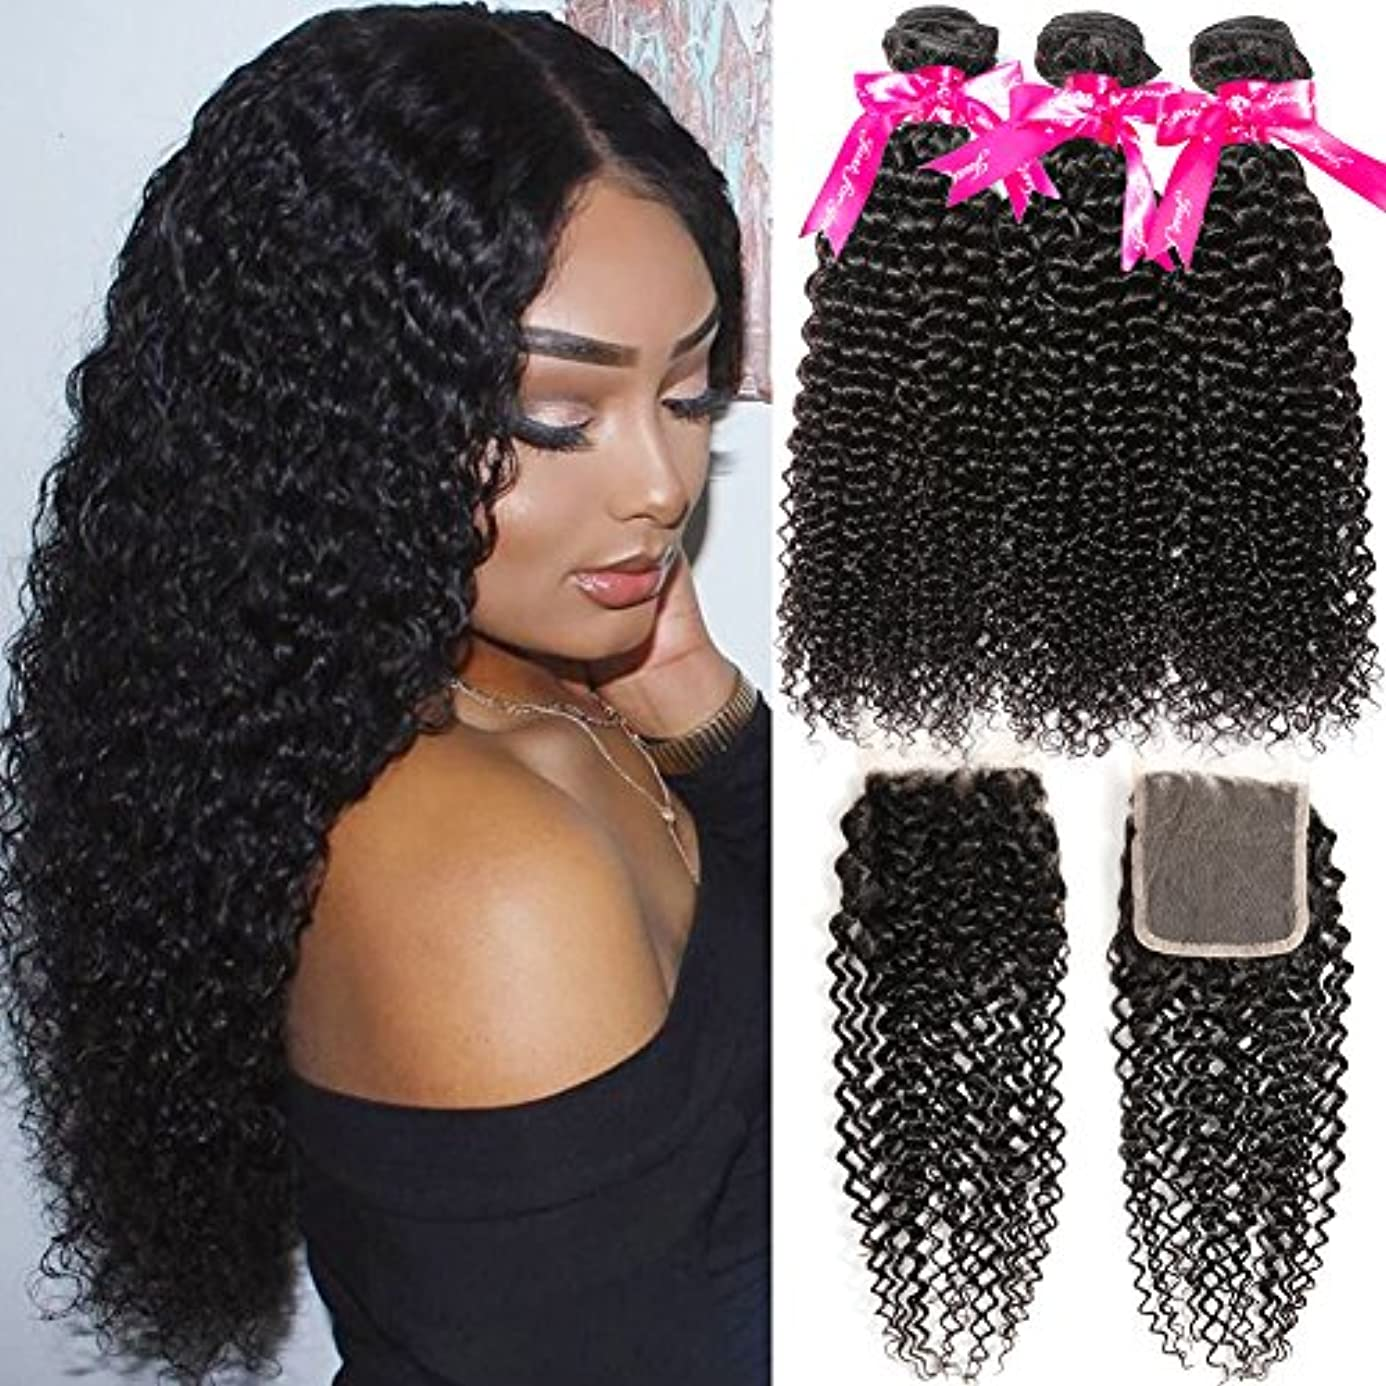 Hermosa 10A Kinky Curly Weave Human Hair Bundles with Closure 20 18 16+14 Good Quality Brazilian curly Hair 3 Bundles with Closure xzu2235855